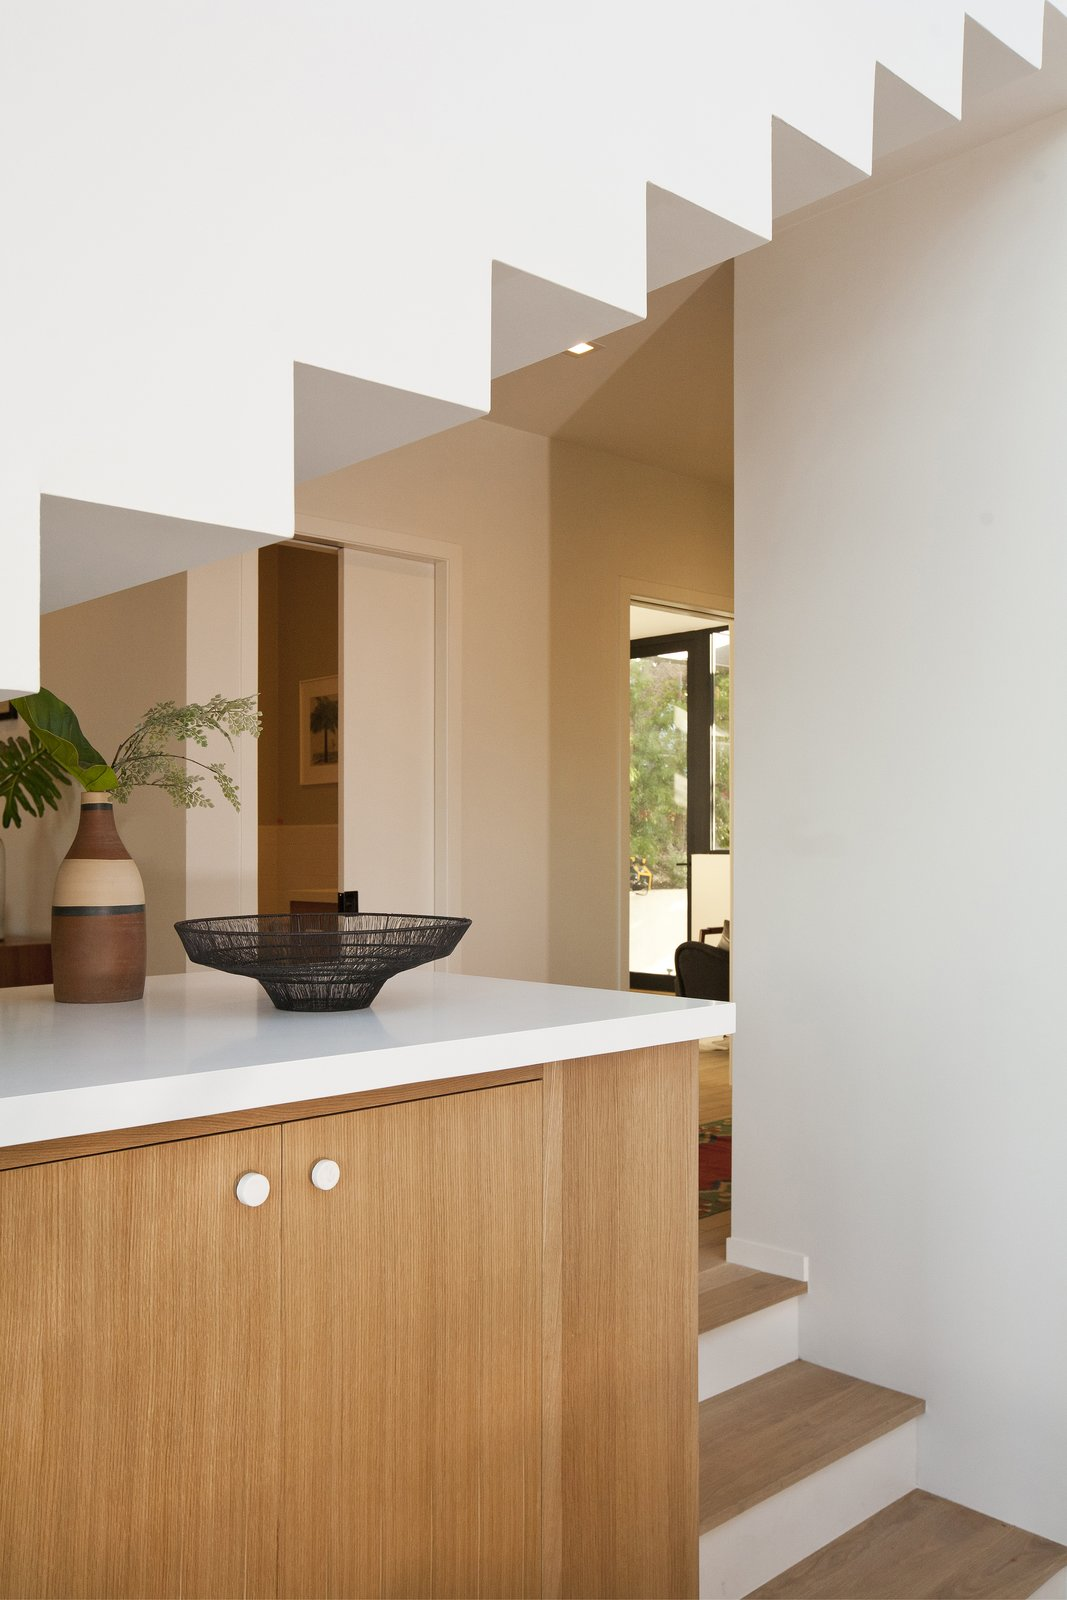 Kitchen, Wood Cabinet, Engineered Quartz Counter, Medium Hardwood Floor, Recessed Lighting, and Ceiling Lighting View to Entry  SL House by ANX / Aaron Neubert Architects